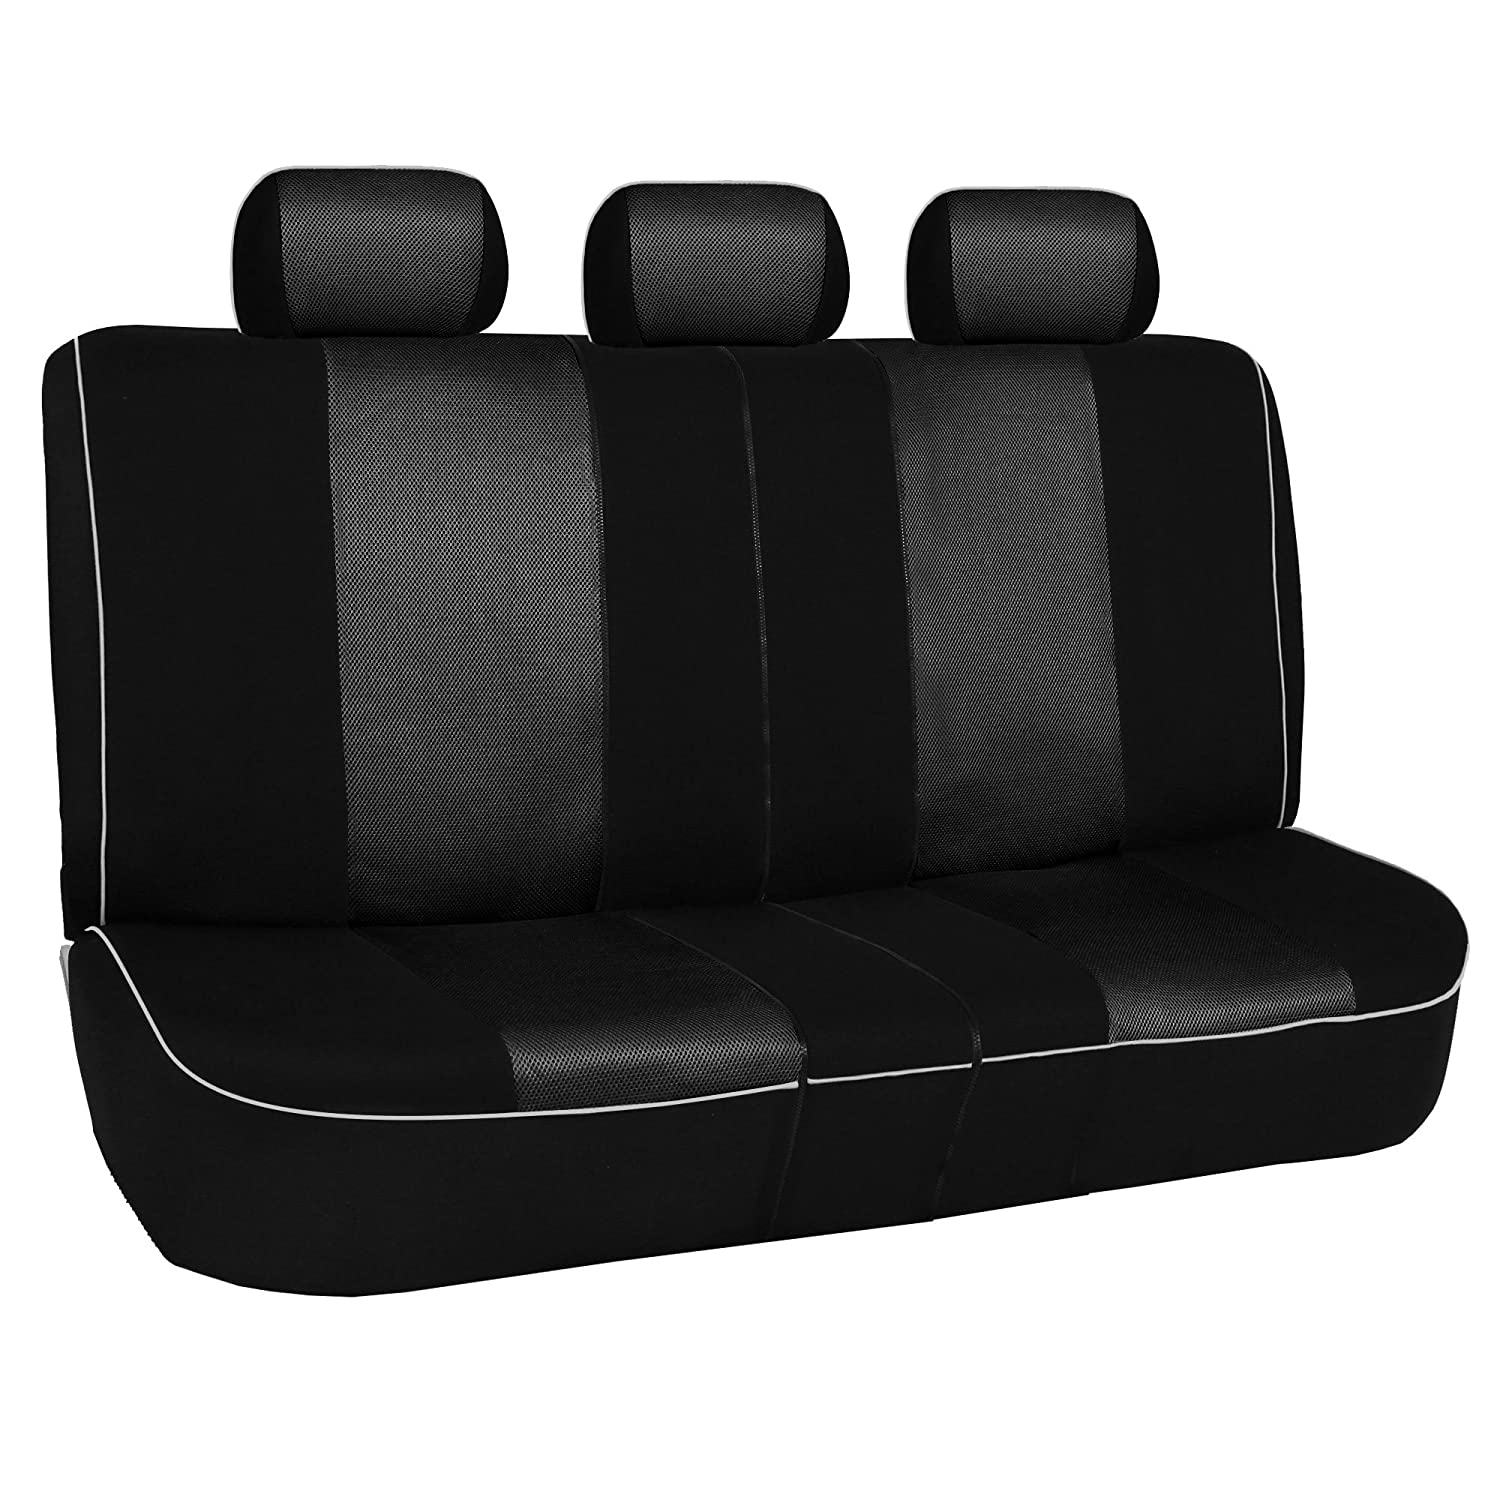 SUV Truck FH Group FH-FB063217 Three Row Cloth Car Seat Covers with Piping Airbag /& Split Ready Beige//Black- Fit Most Car or Van